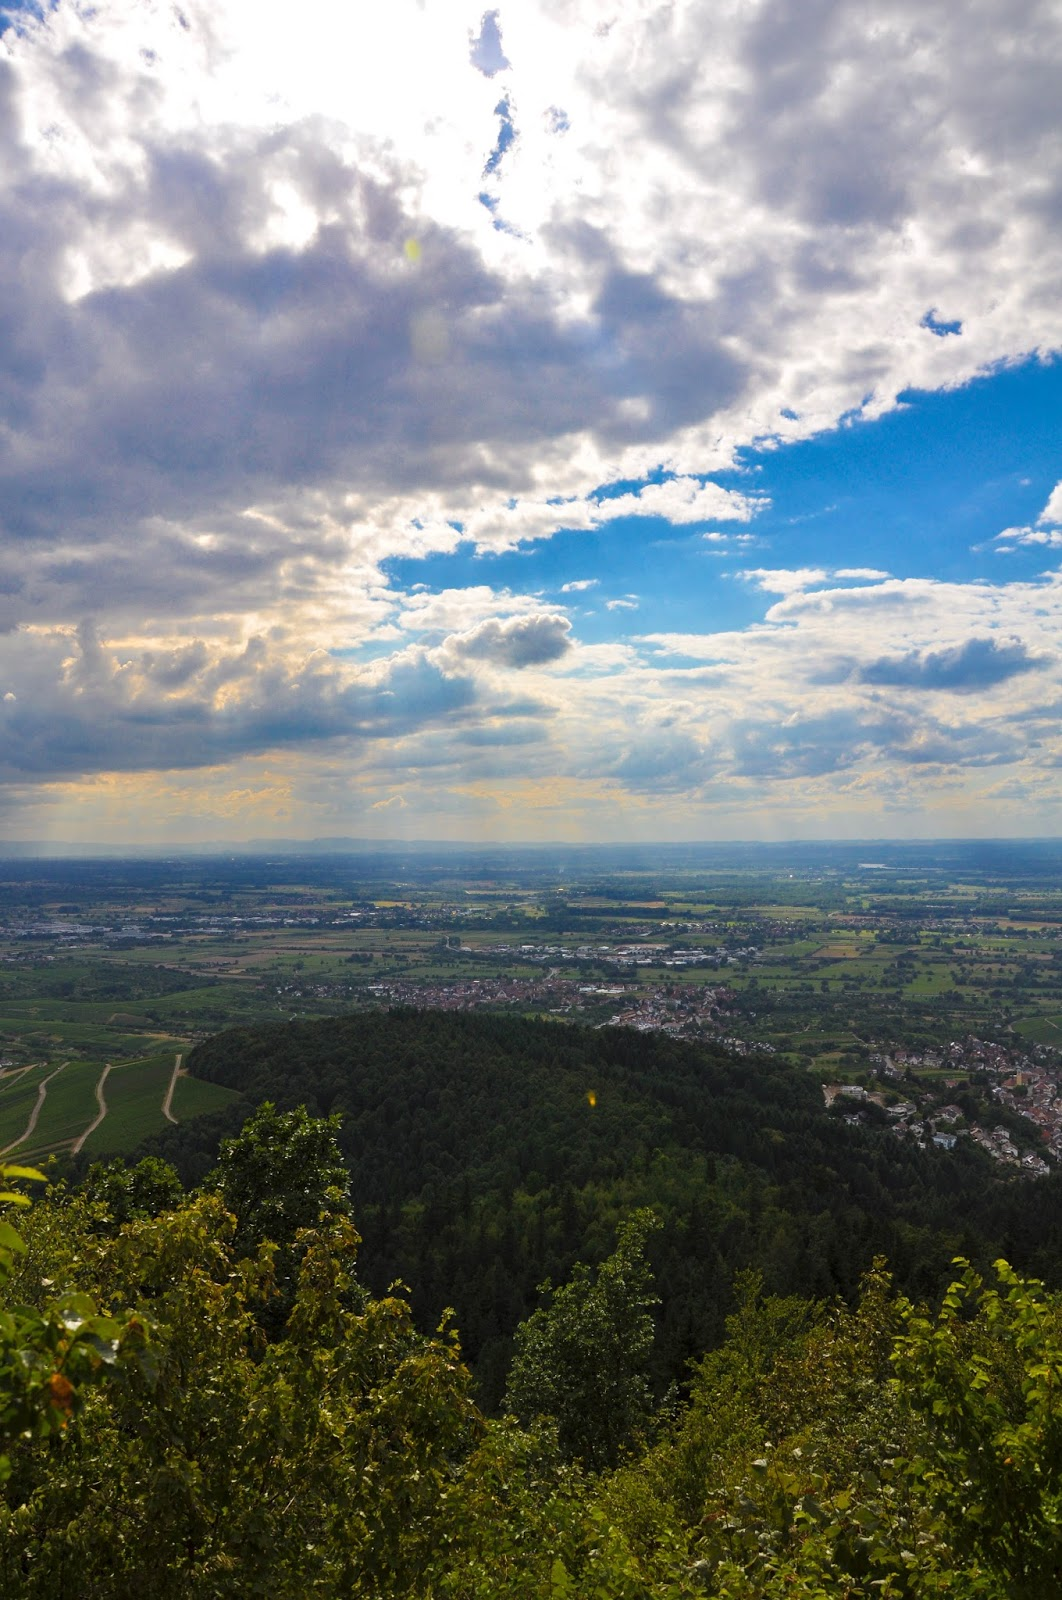 The Rhine Valley seen from the Yburg Castle, Germany